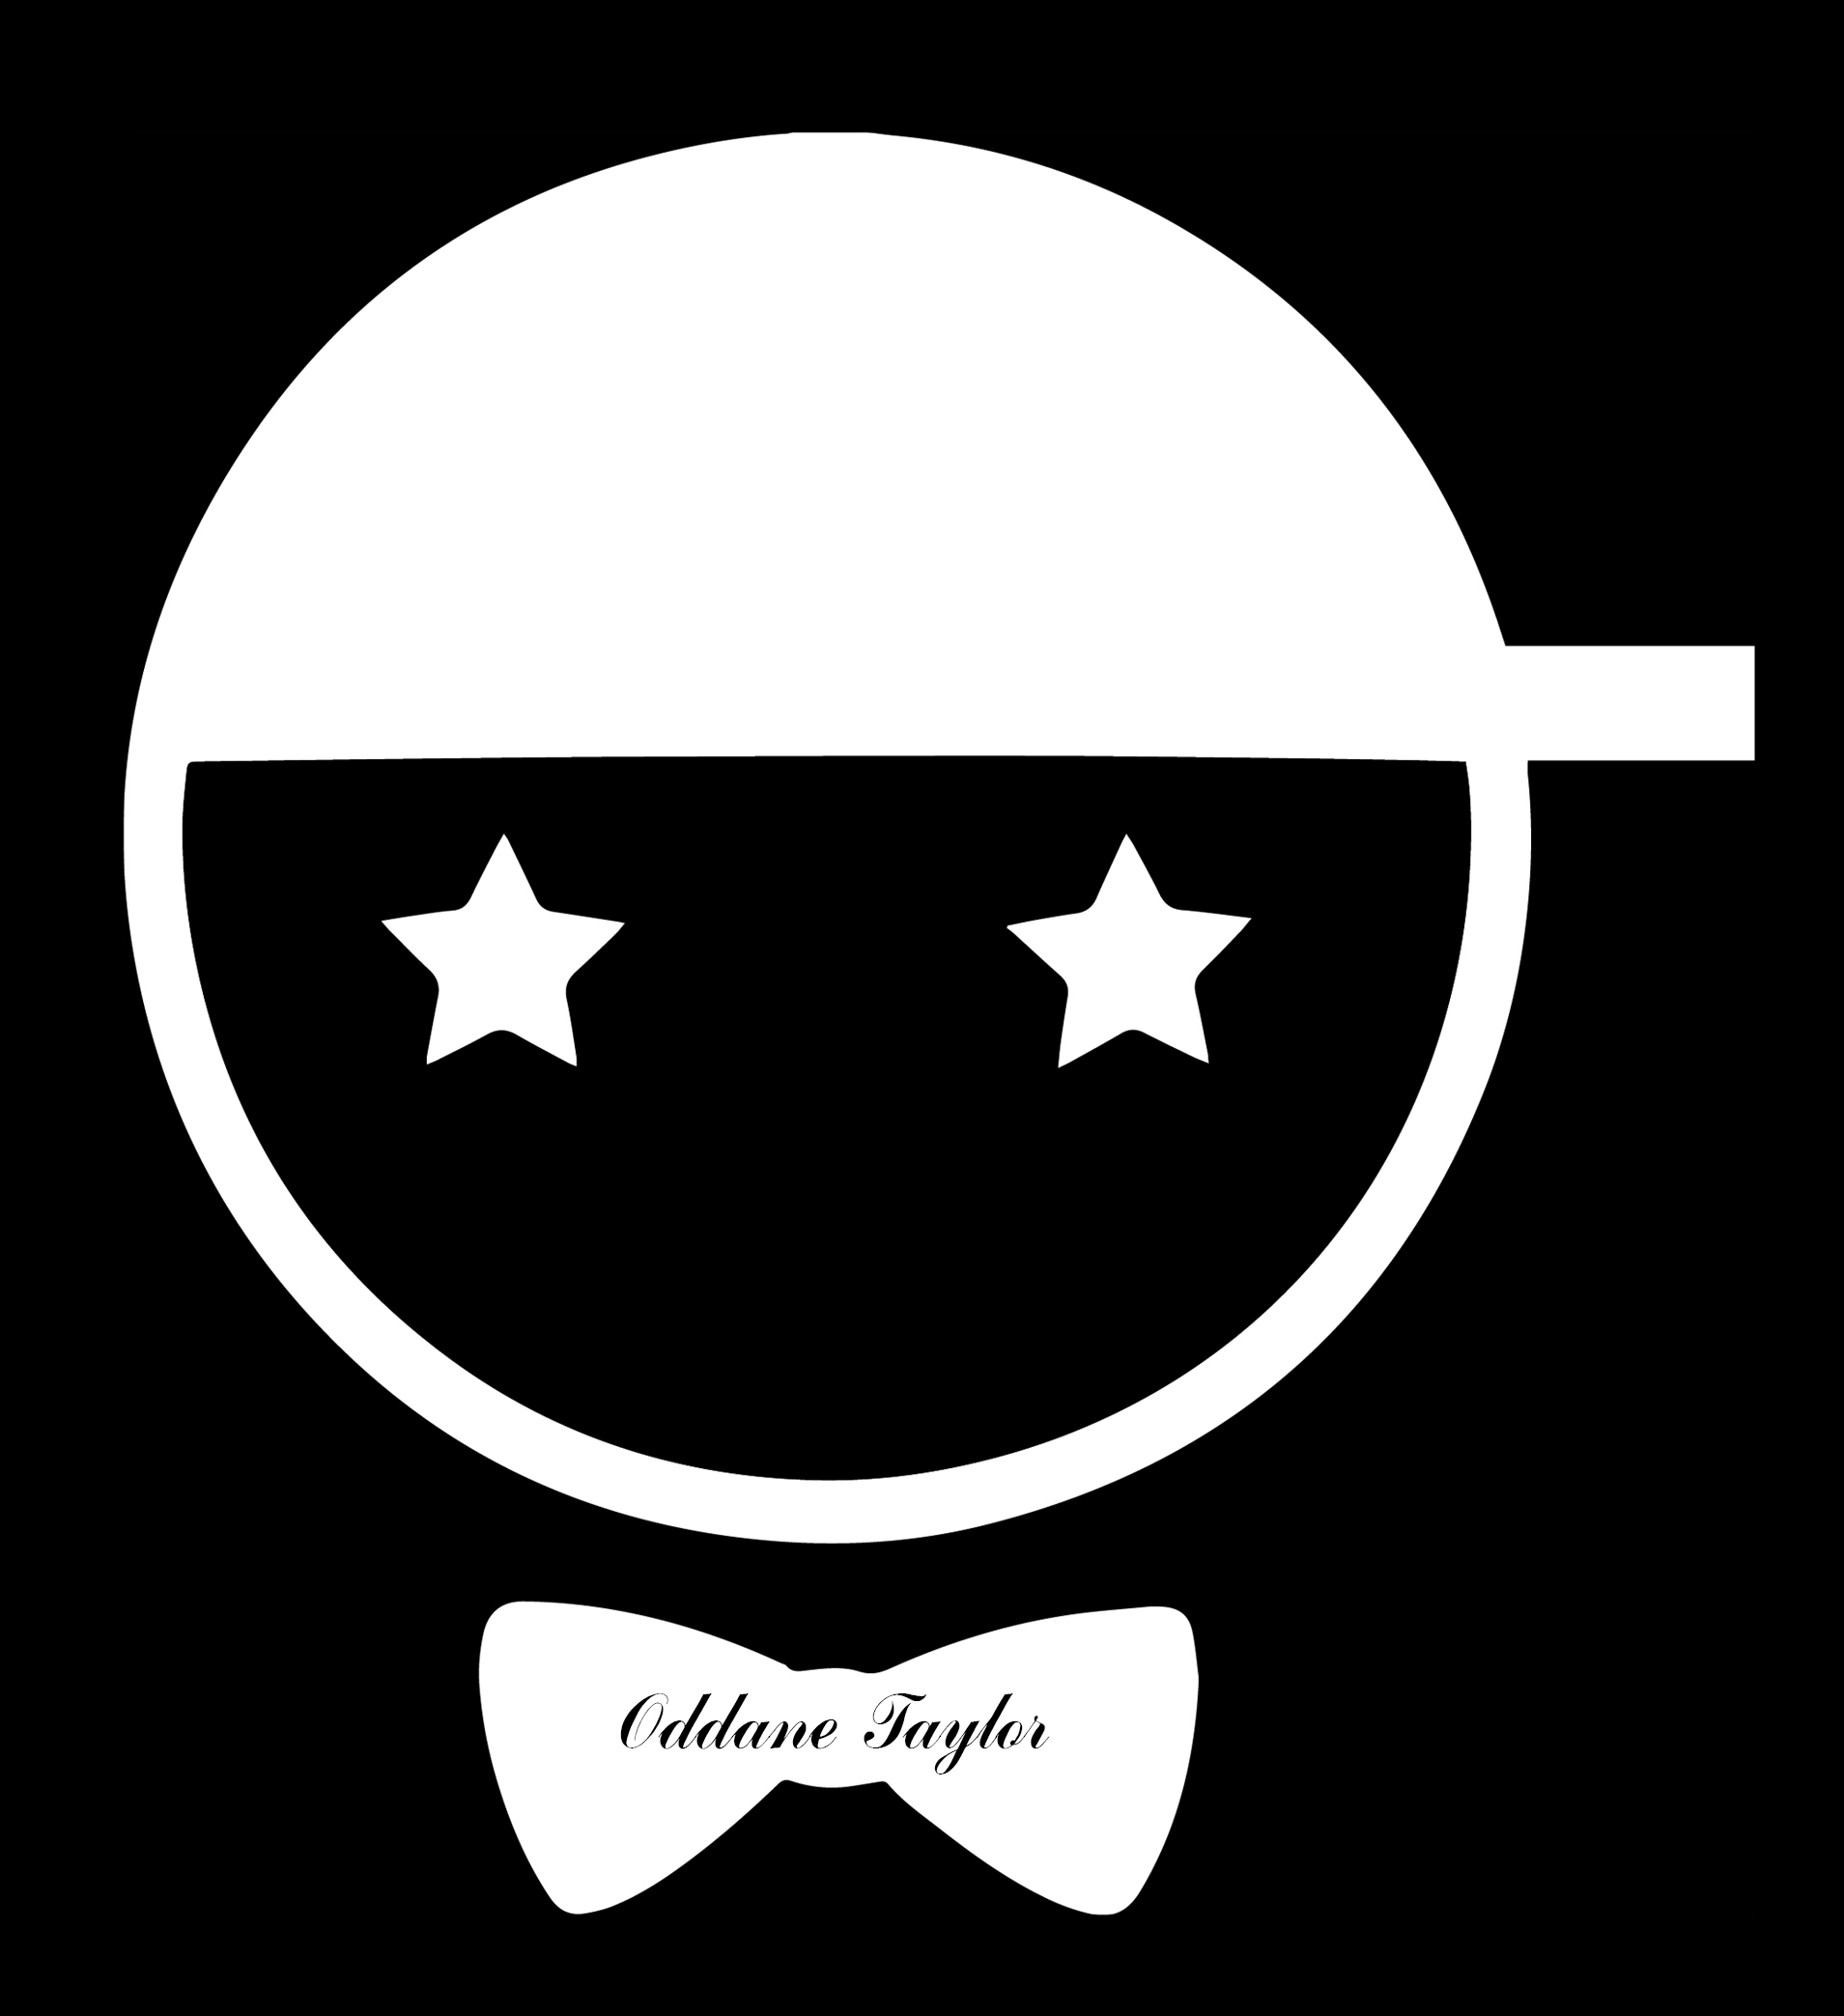 Oddane Official Logo 2_with name tie.jpg